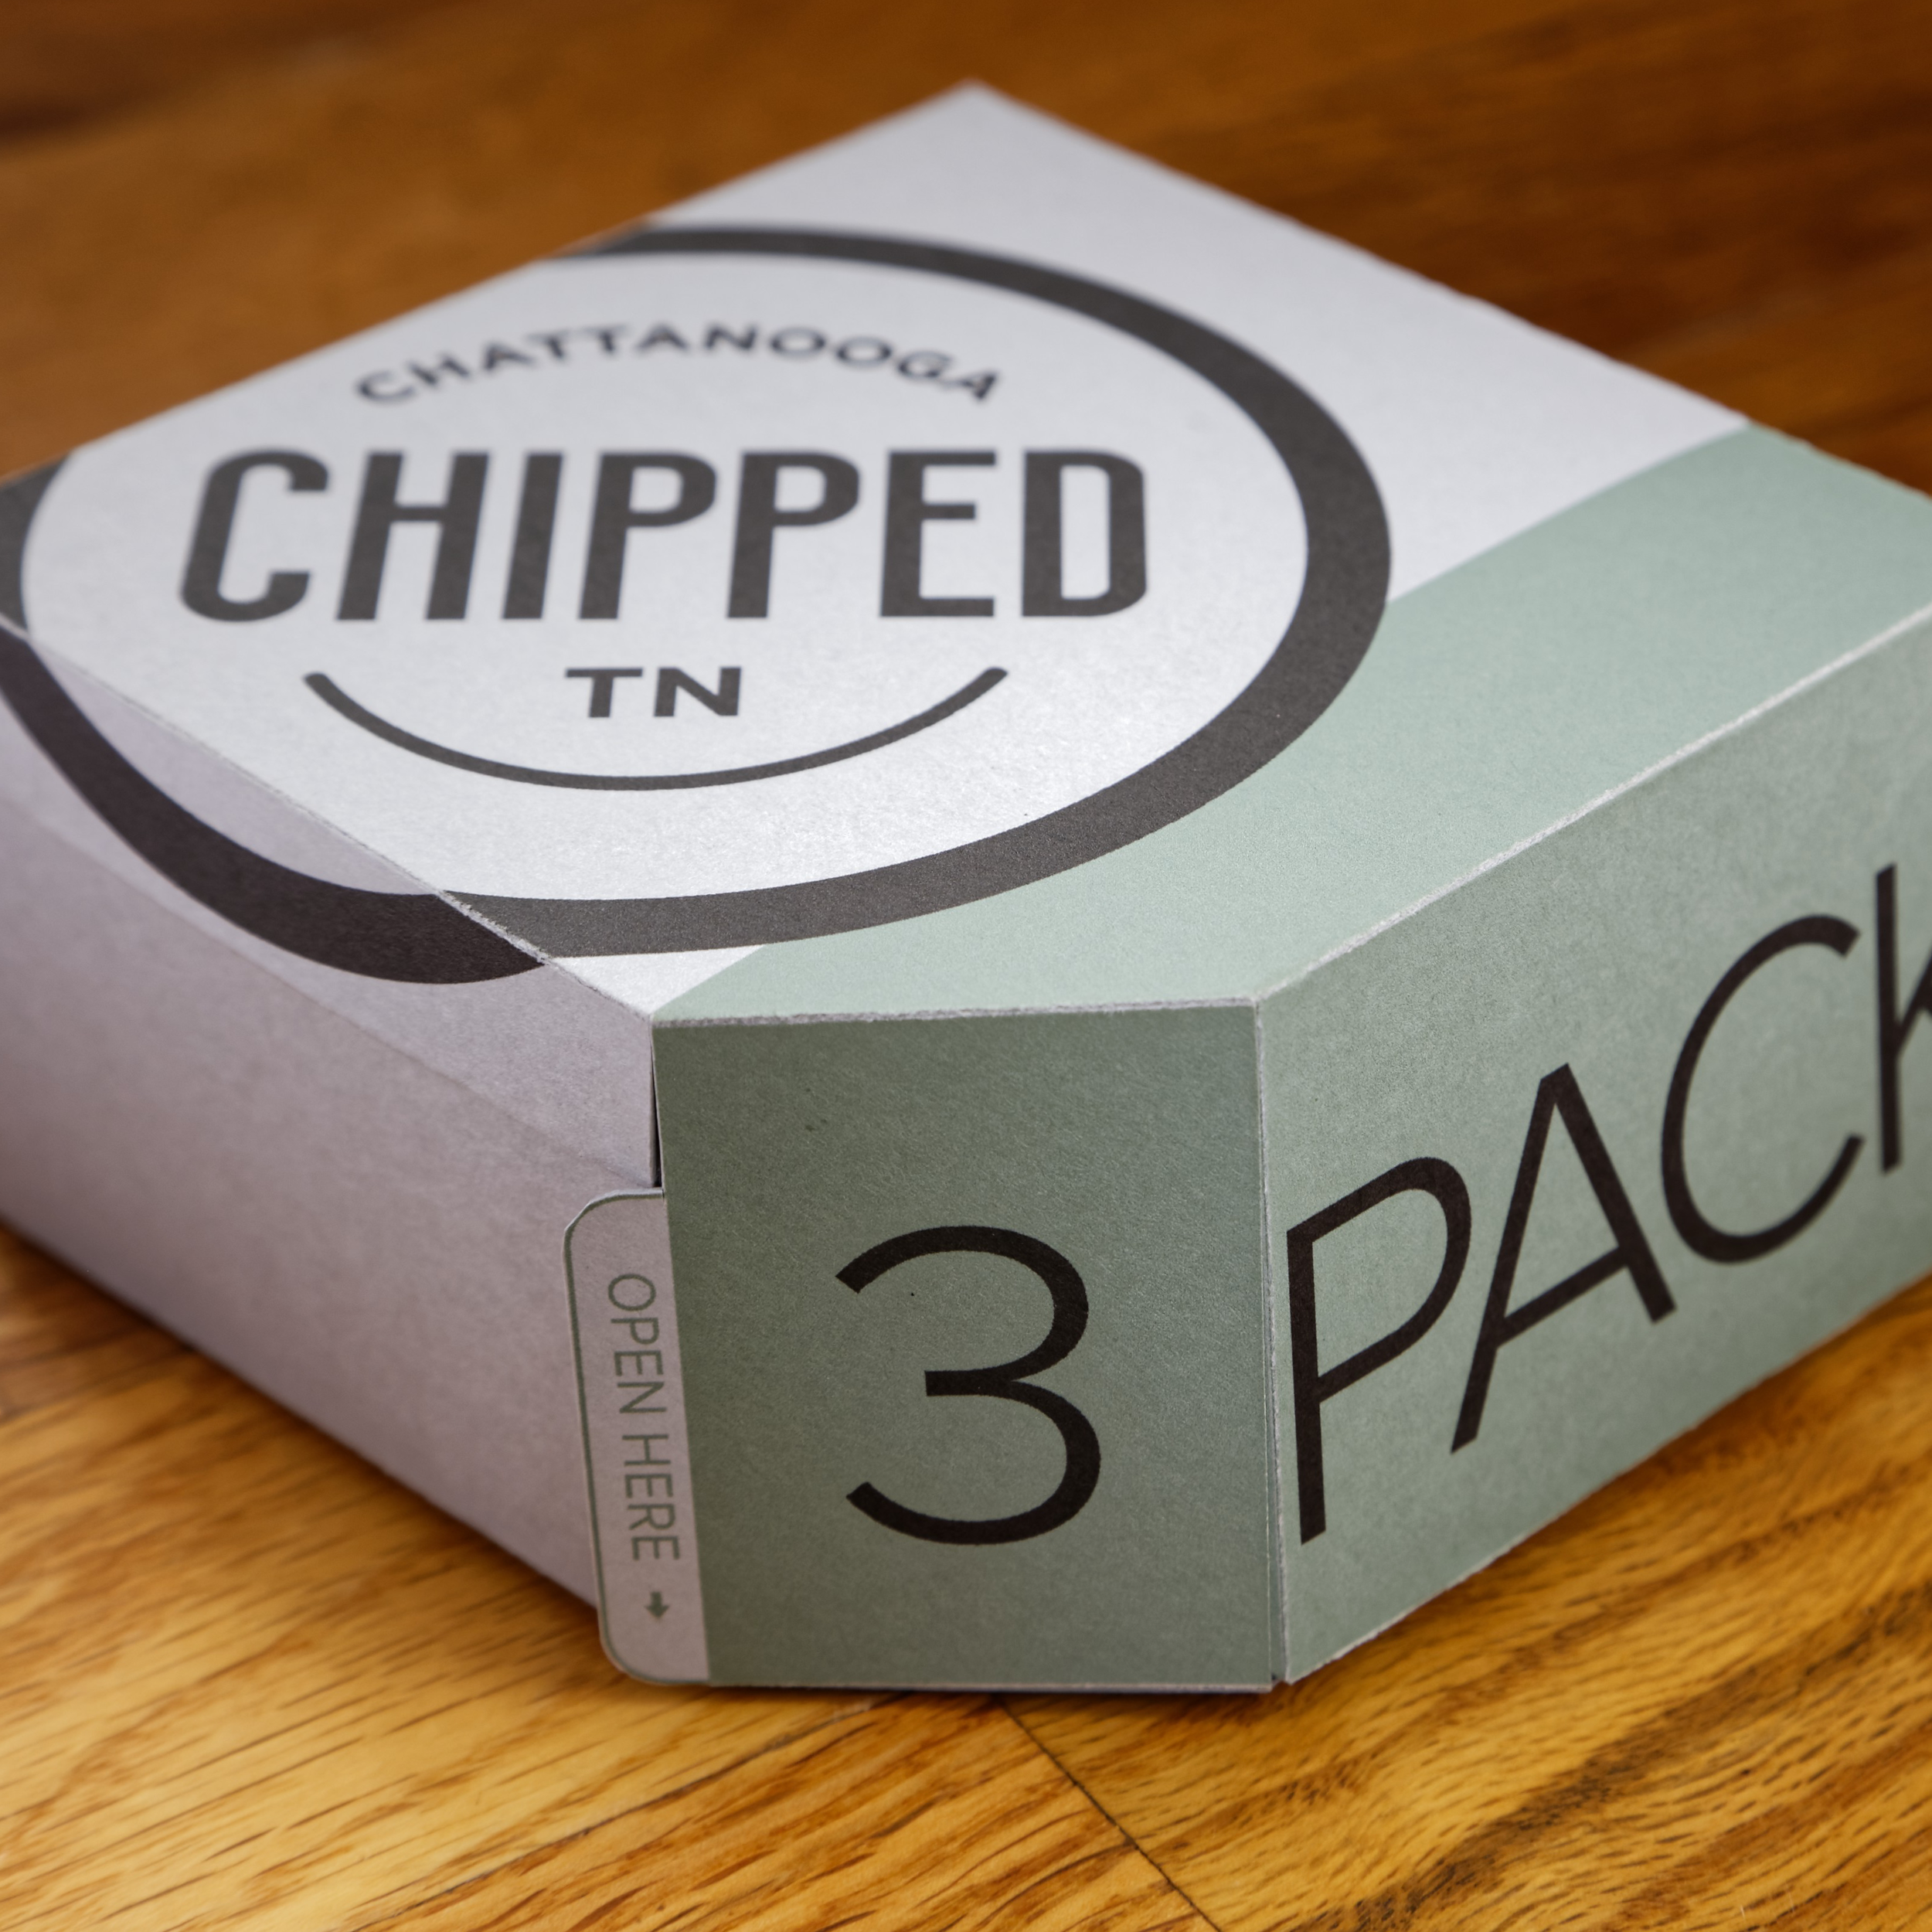 packaging    Chipped    VIEW PROJECT